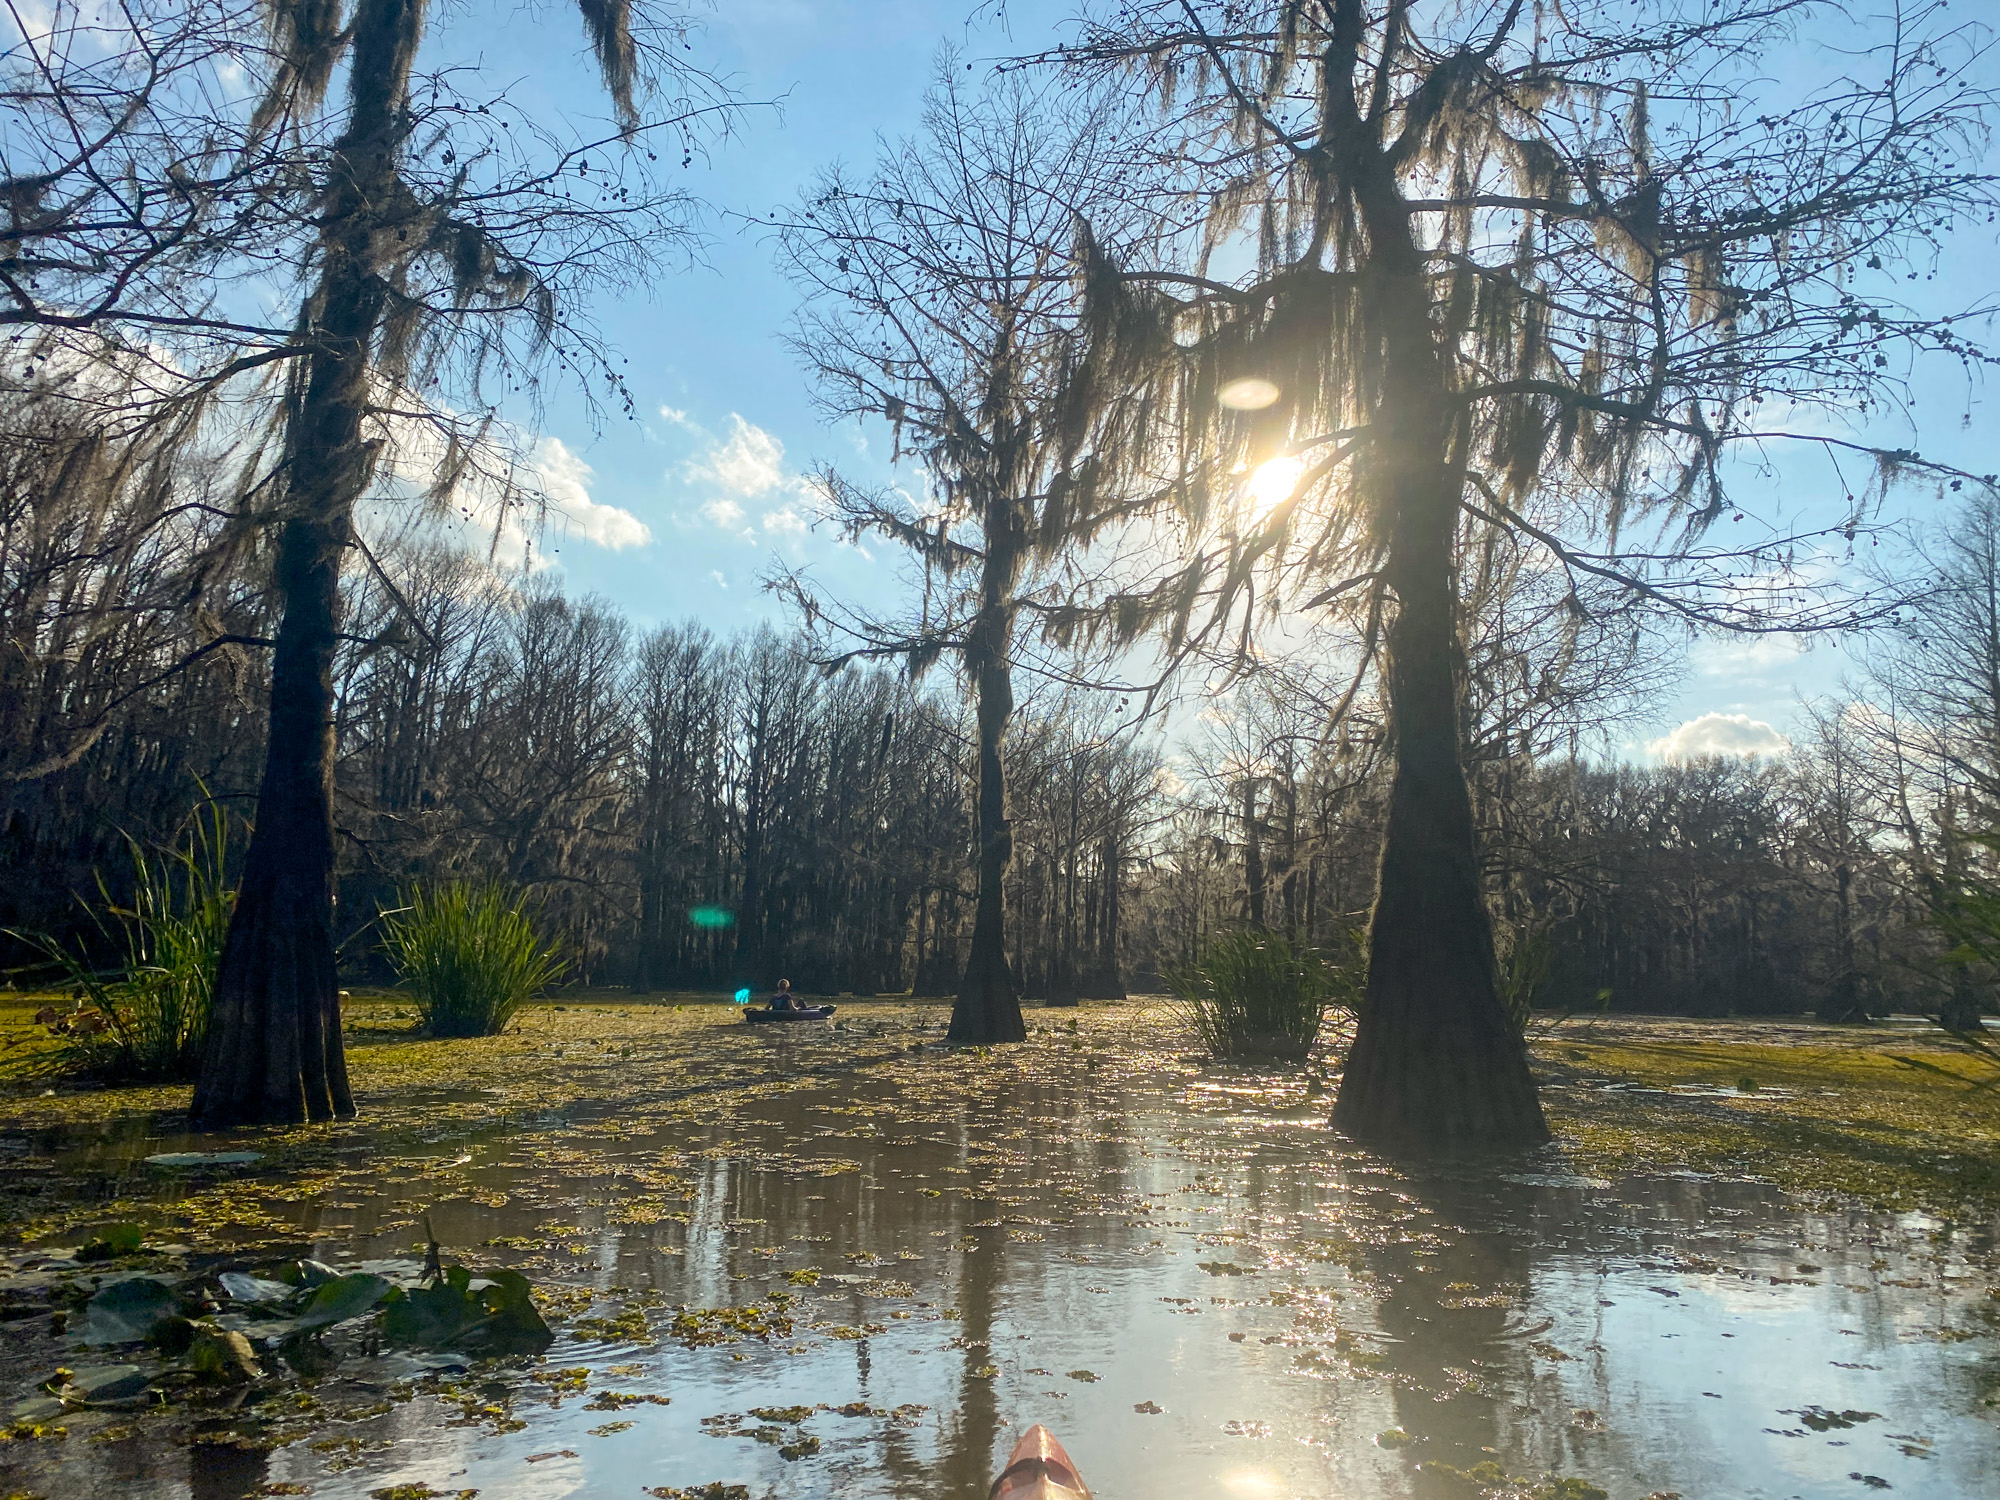 The sun shines through the trees on Hell's Half Acre Paddling Trail